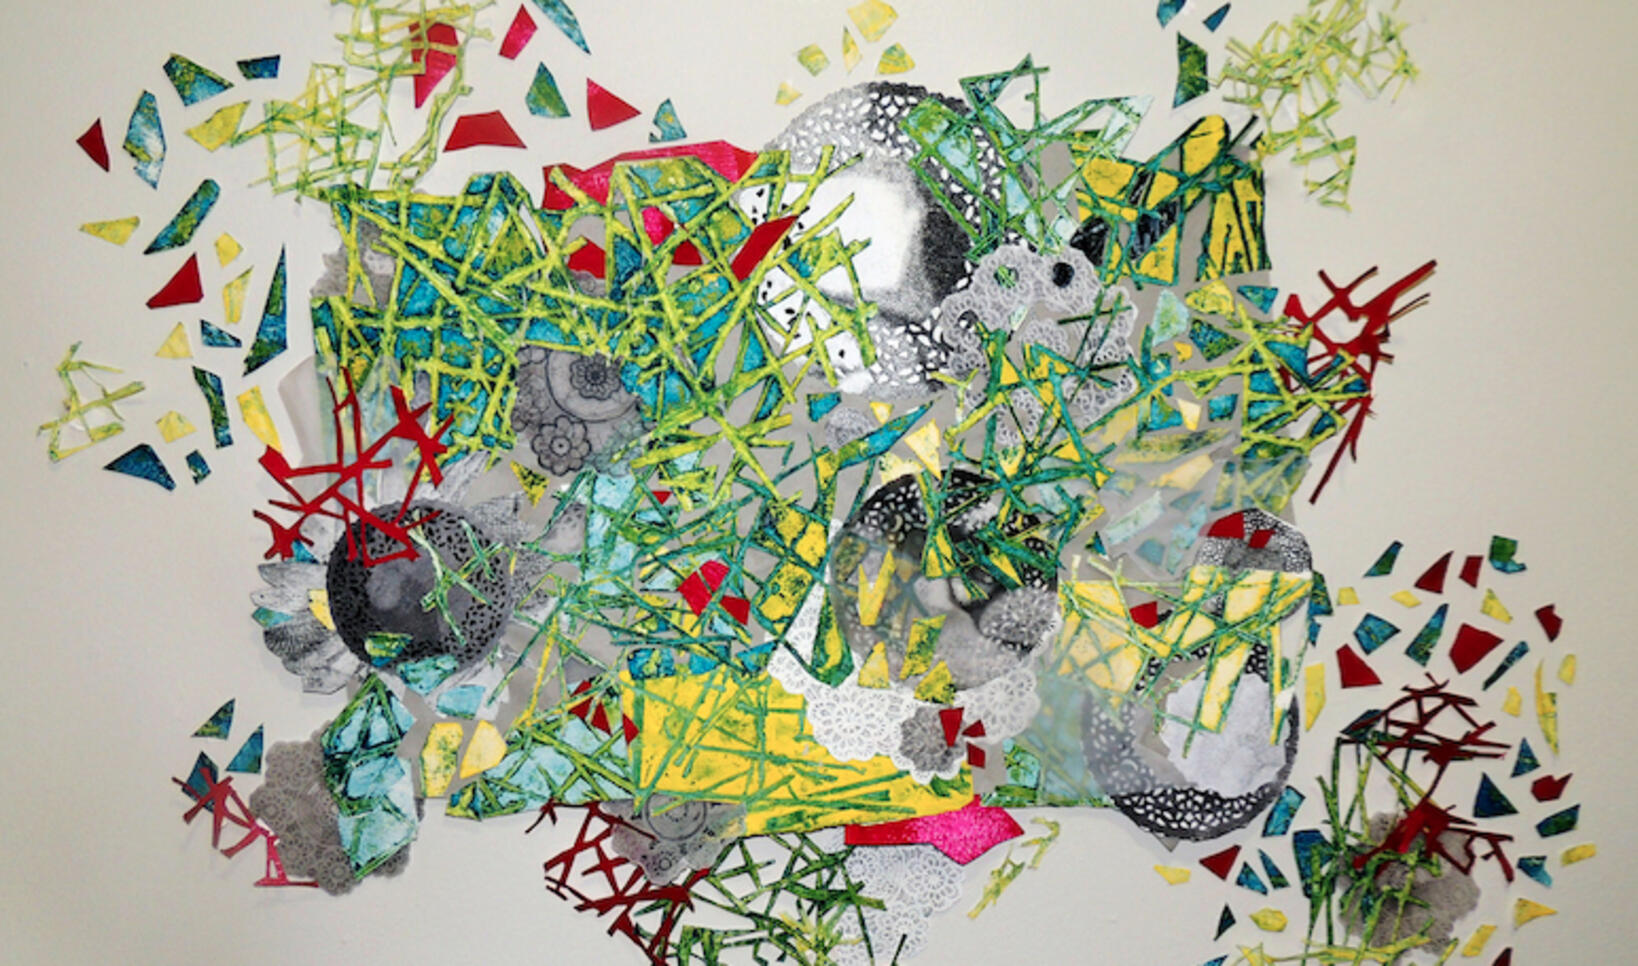 Pressed drawing composed of collage and different  textures, including lace. ; Alexis Weber